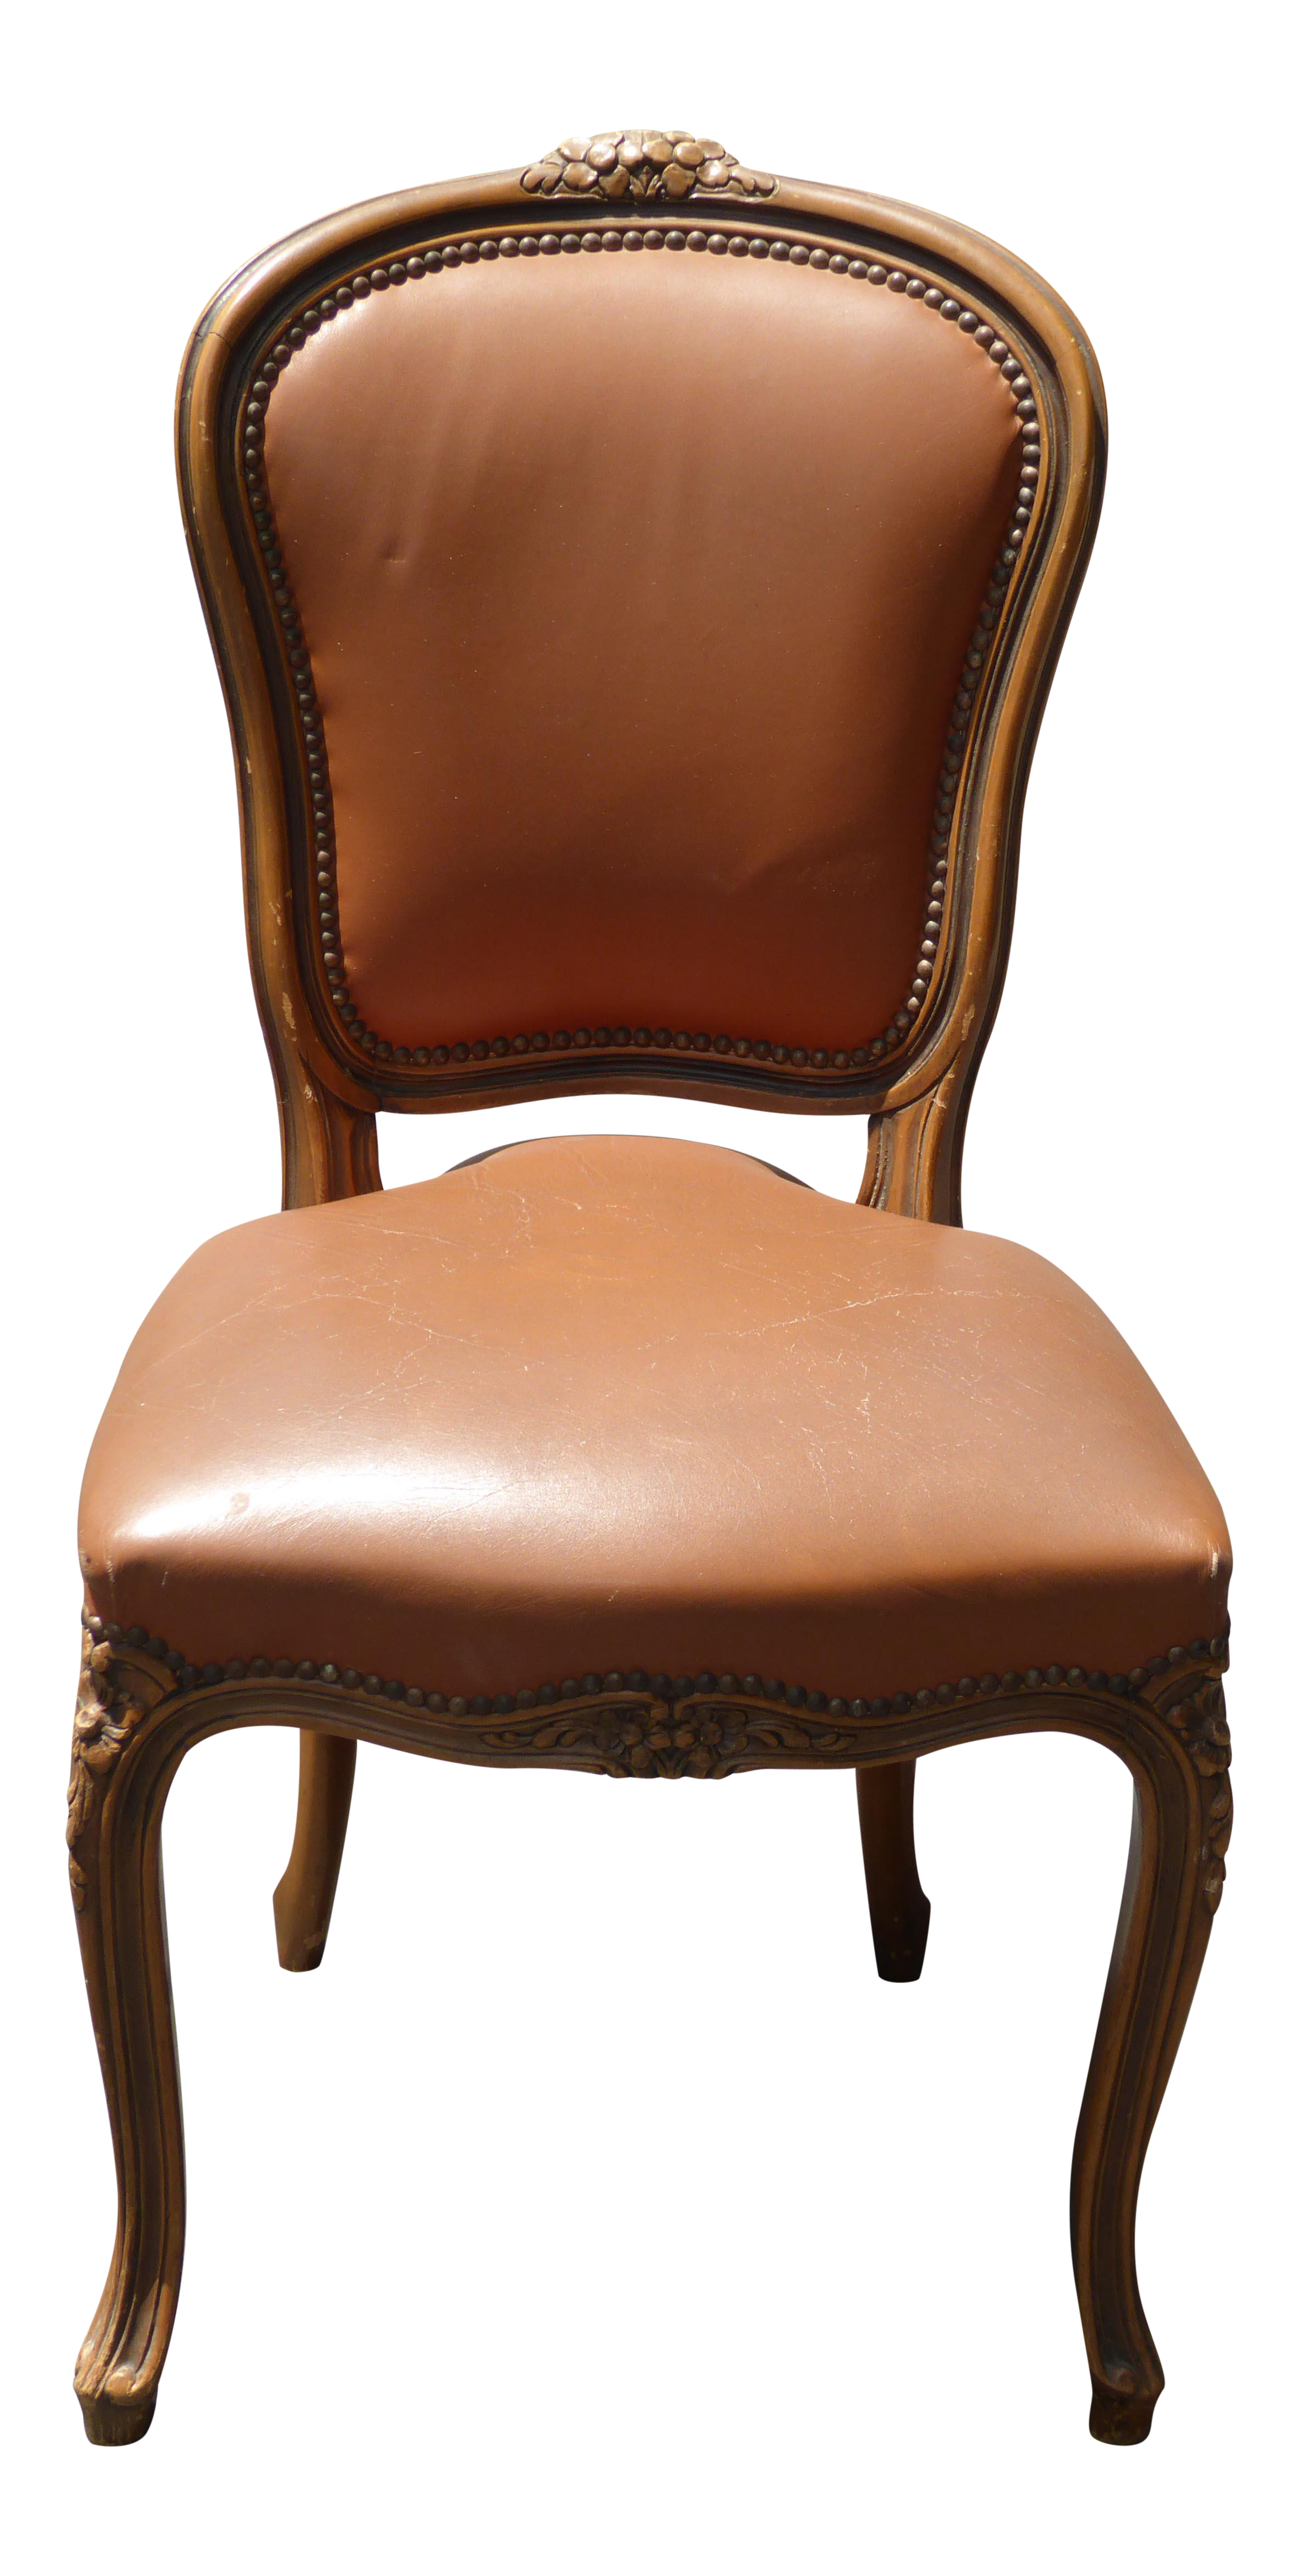 Furniture clipart comfortable chair. French provincial style brown